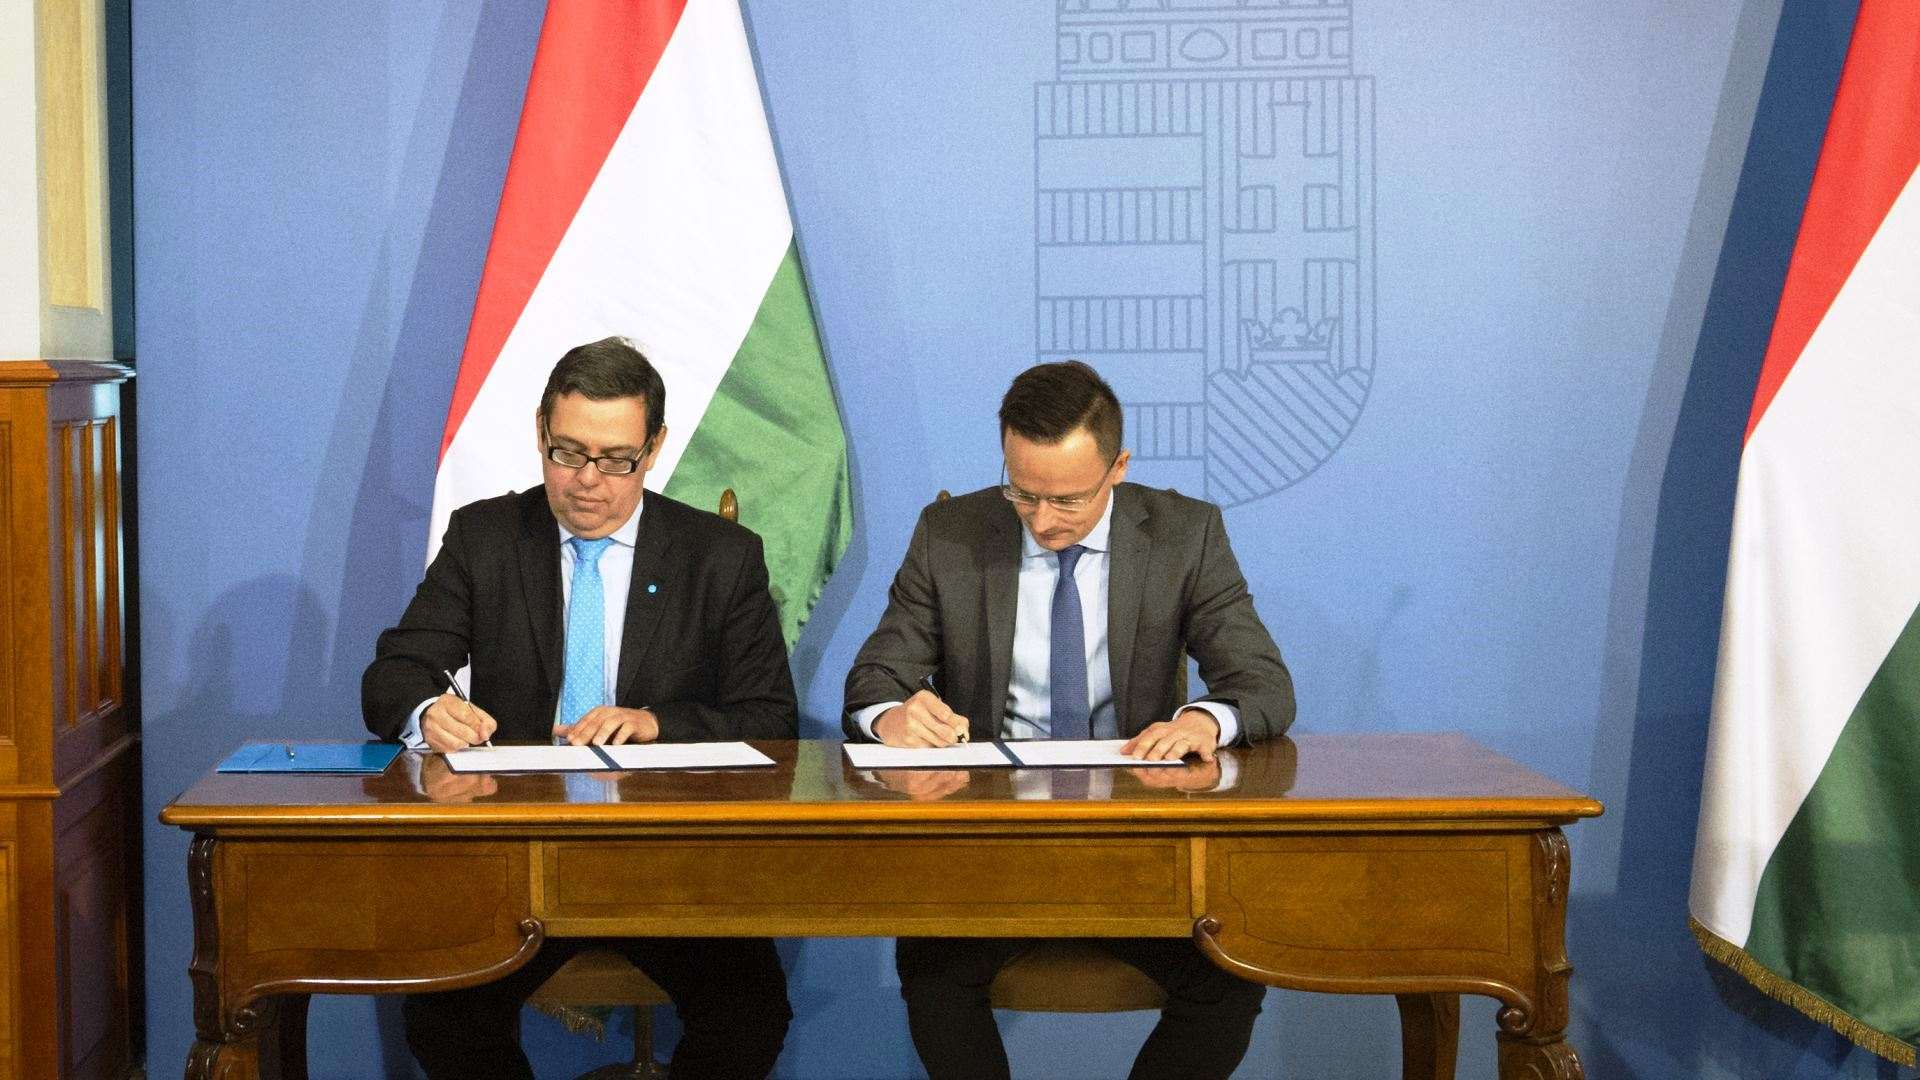 Marc de Bastos Eckstein and Péter Szijjártó signing the cooperation agreement